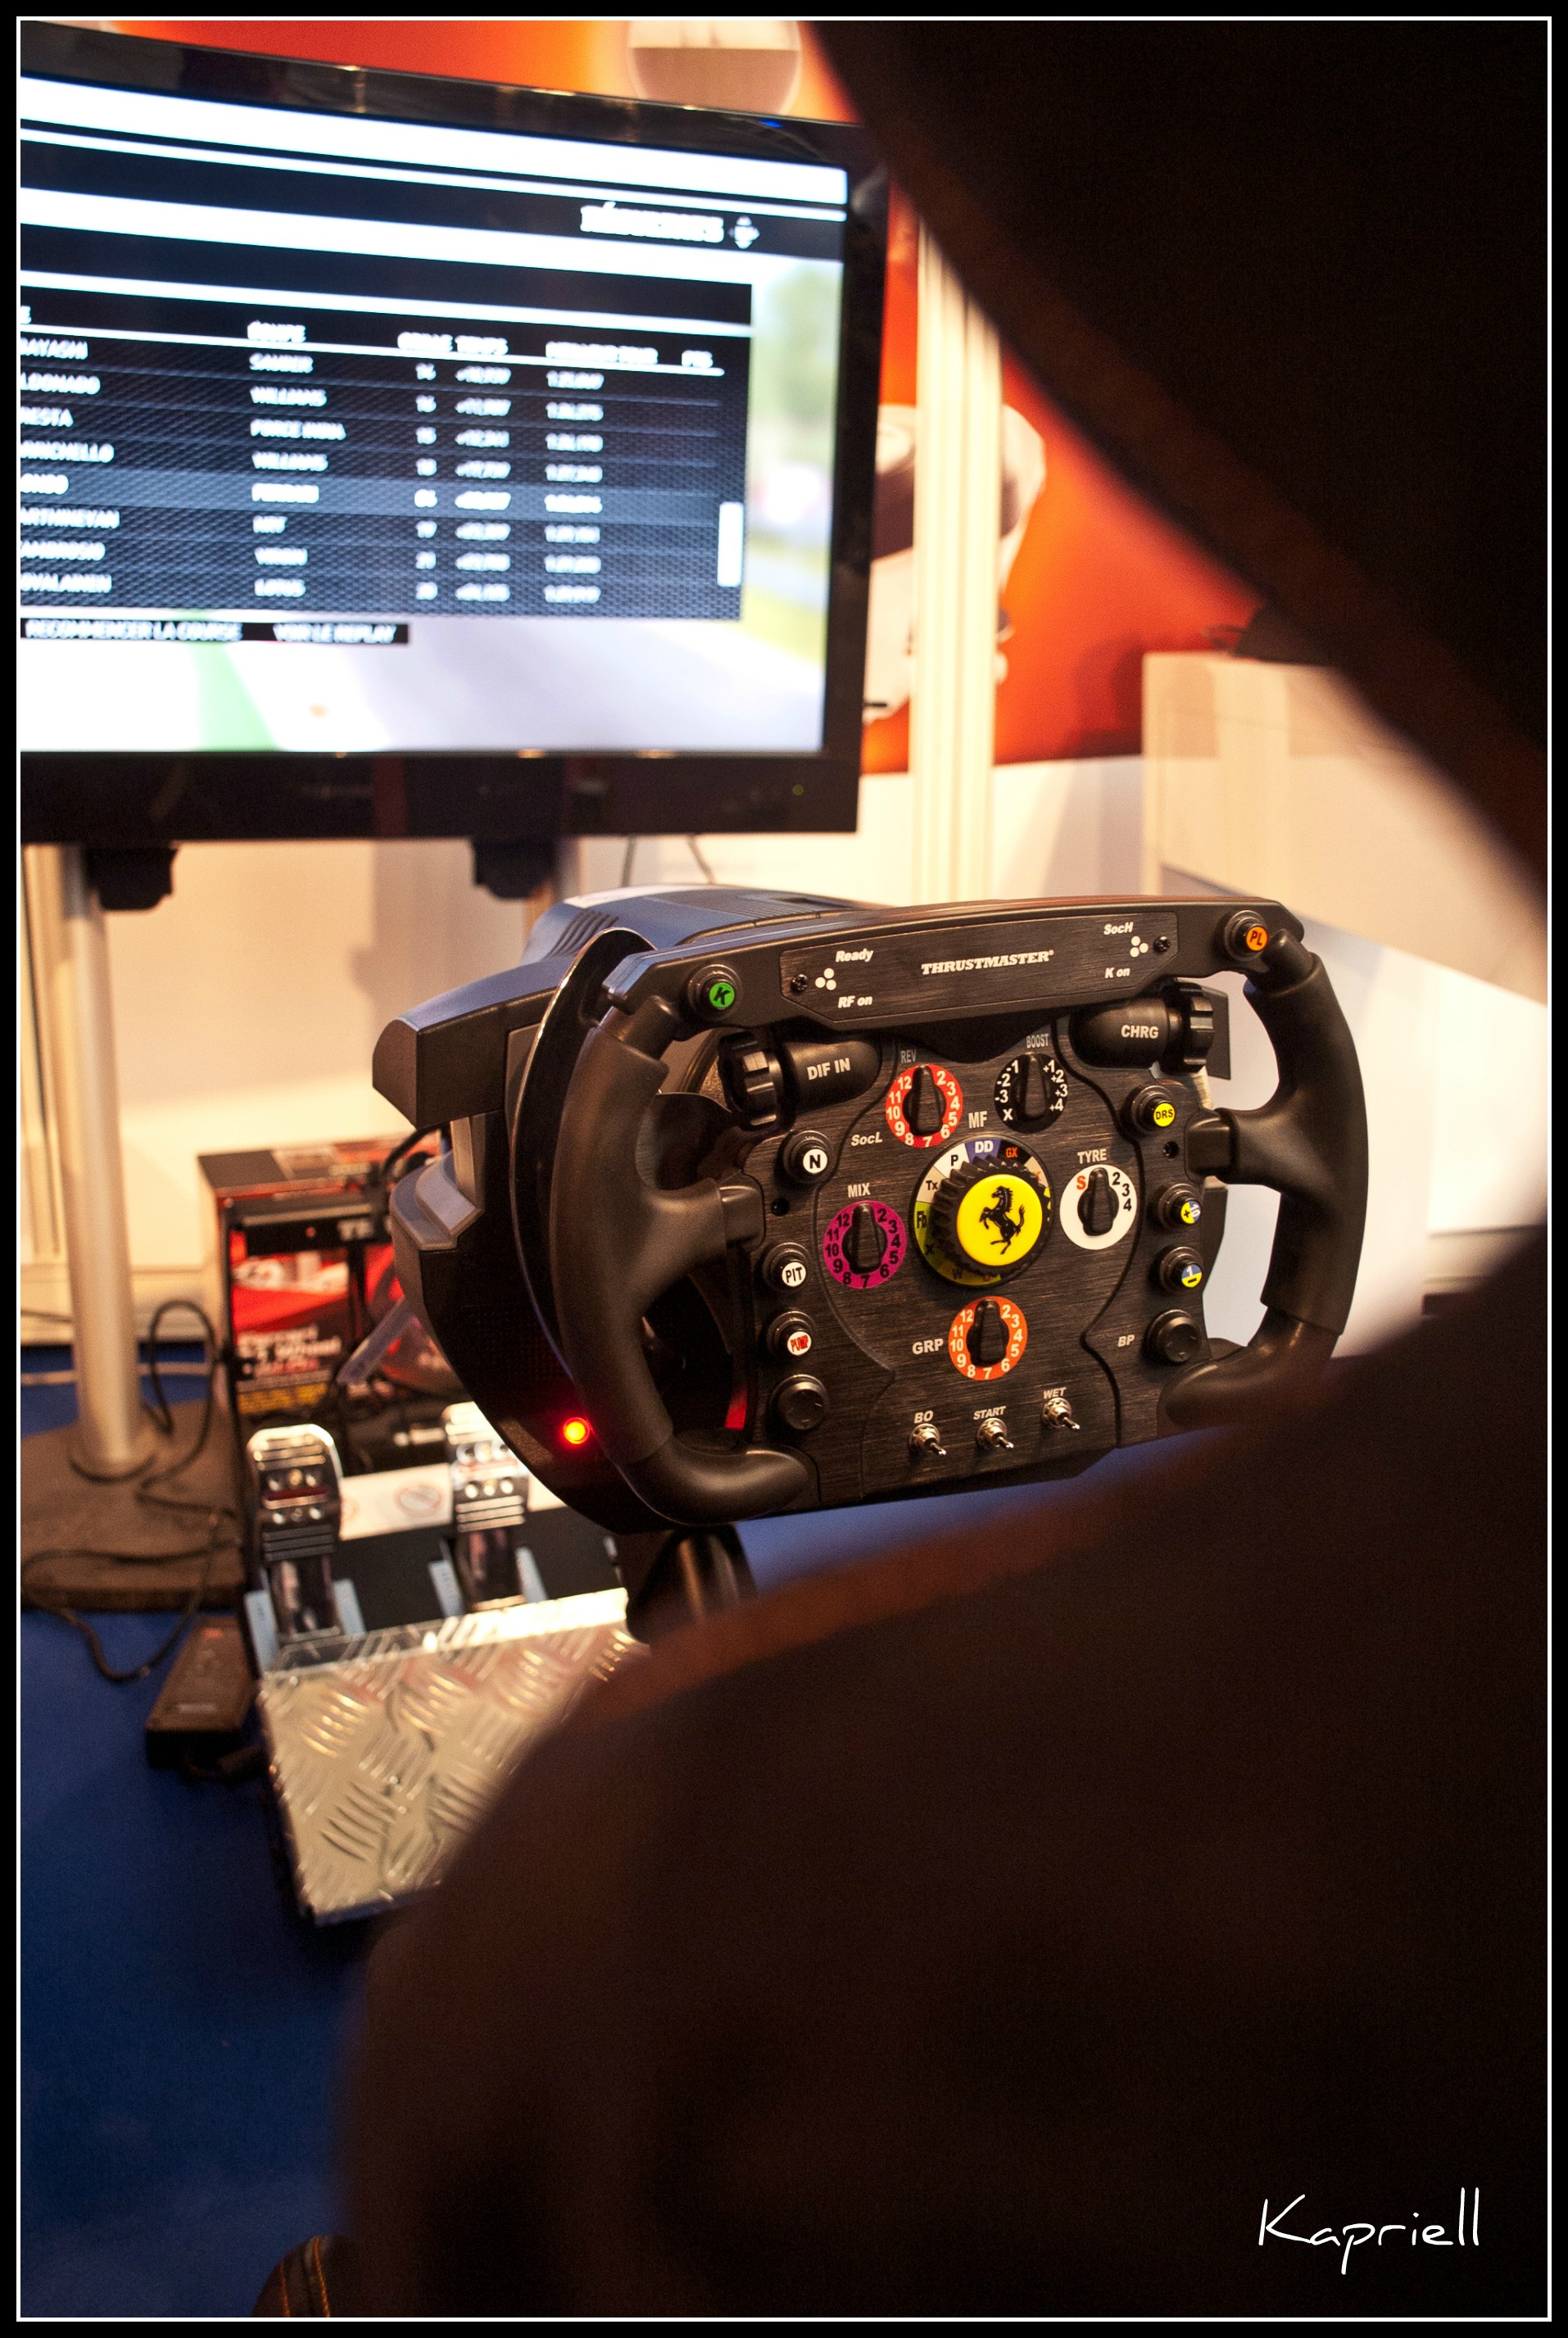 test le volant de la ferrari d 39 alonso sur ps3. Black Bedroom Furniture Sets. Home Design Ideas